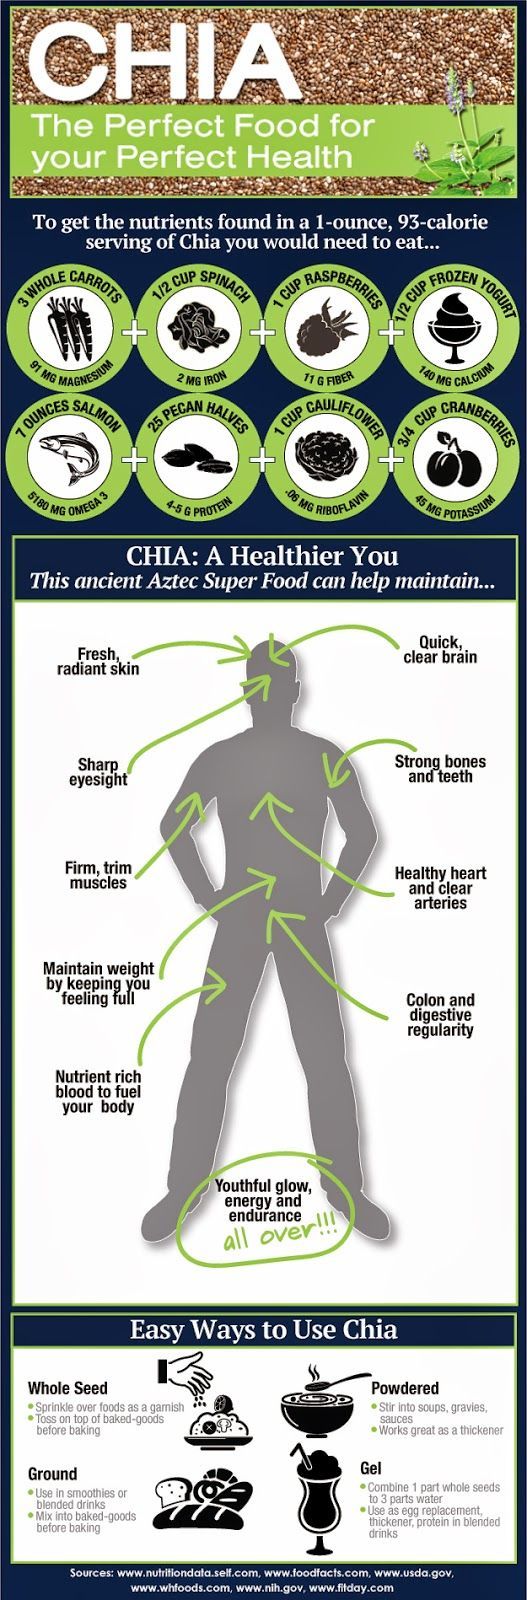 CHIA The Perfect Food for your Perfect Health